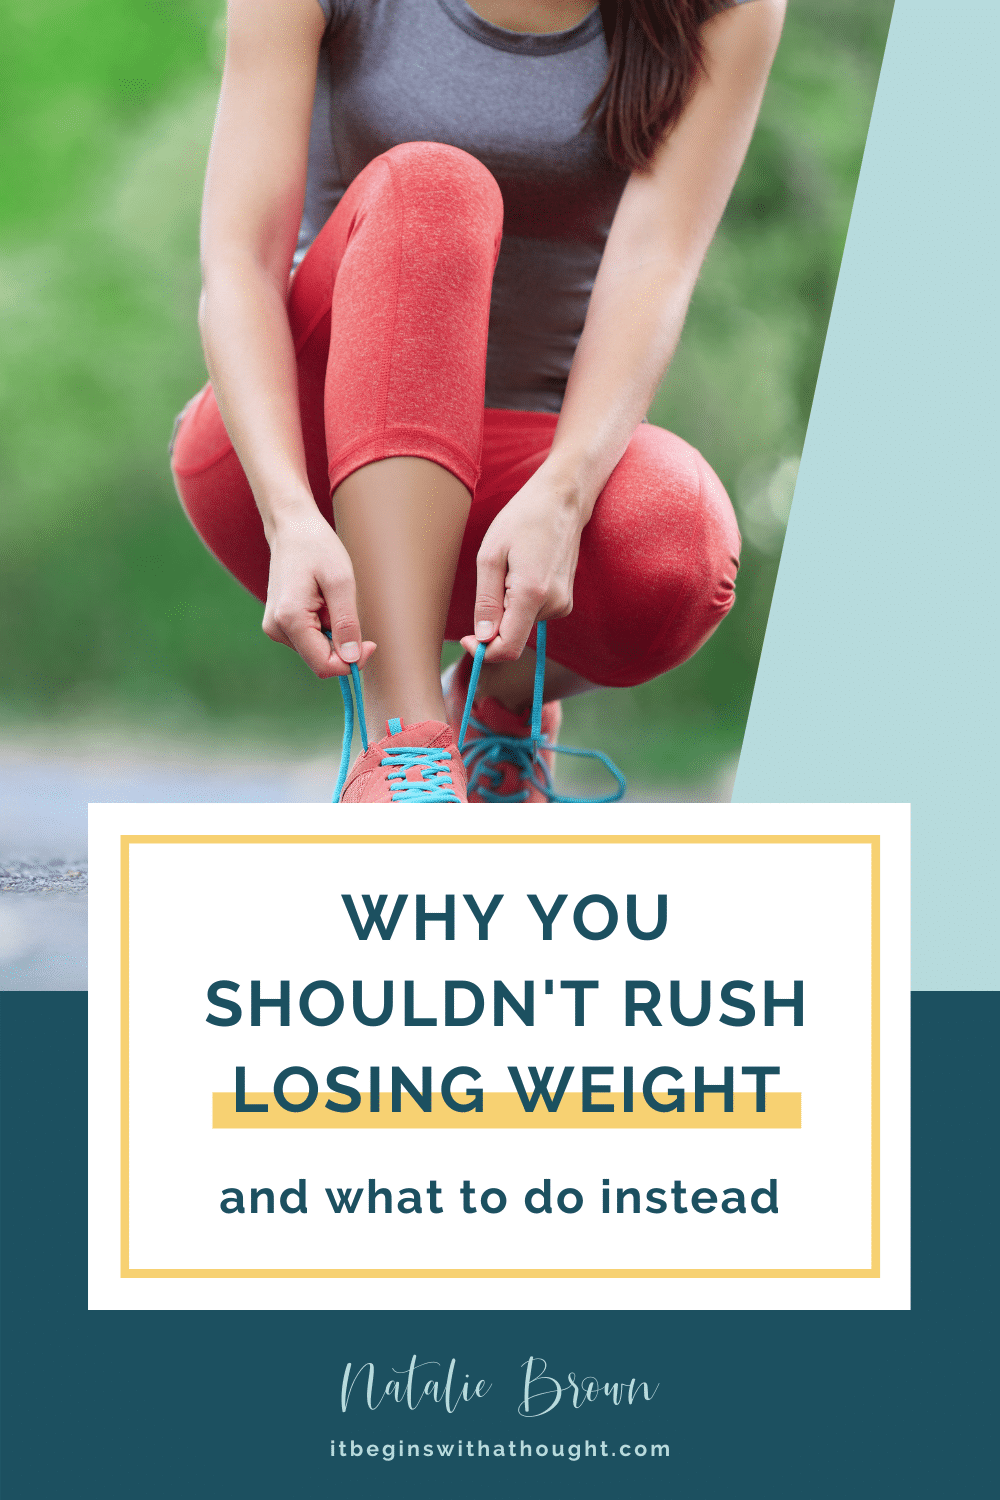 Why You Shouldn't Rush Losing Weight